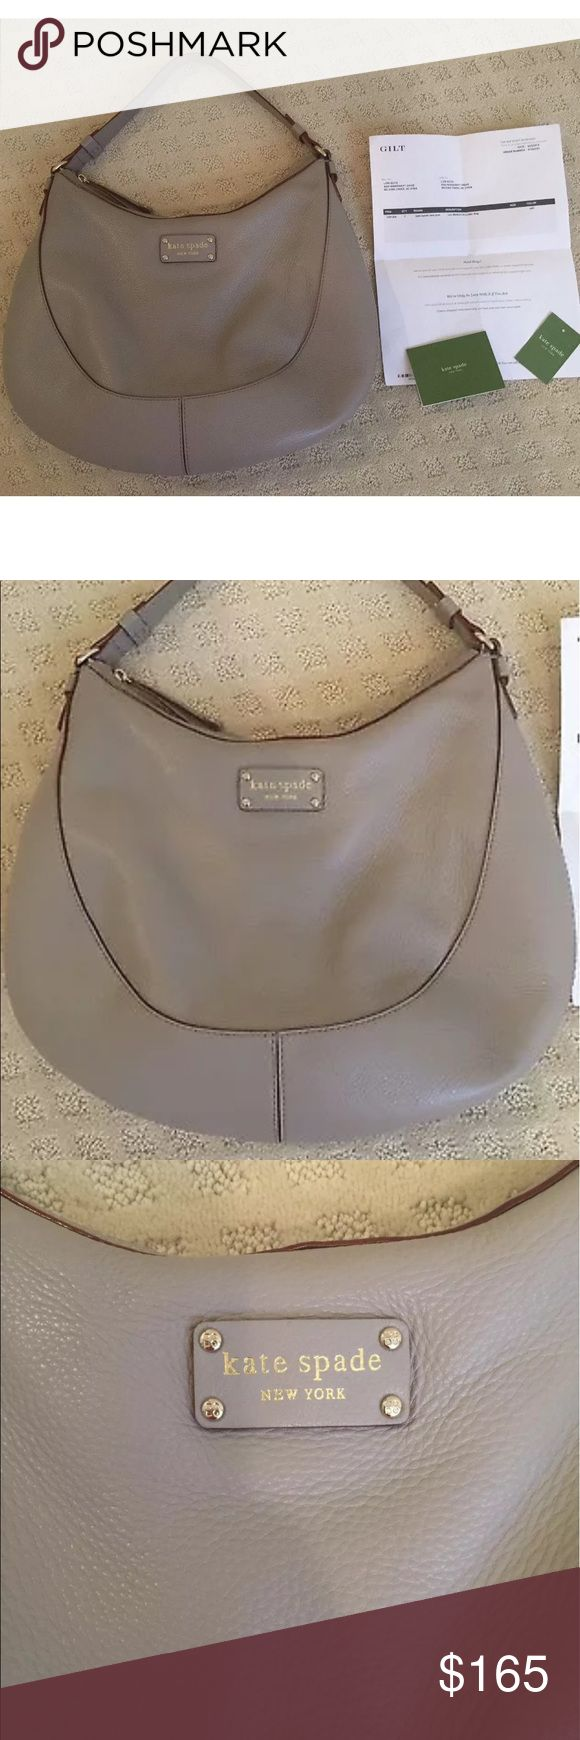 Kate Spade gray color hobo style bag Beautiful Kate Spade hobo style bag. Purchased from Gilt. Carried a few times. Excellent condition! kate spade Bags Hobos